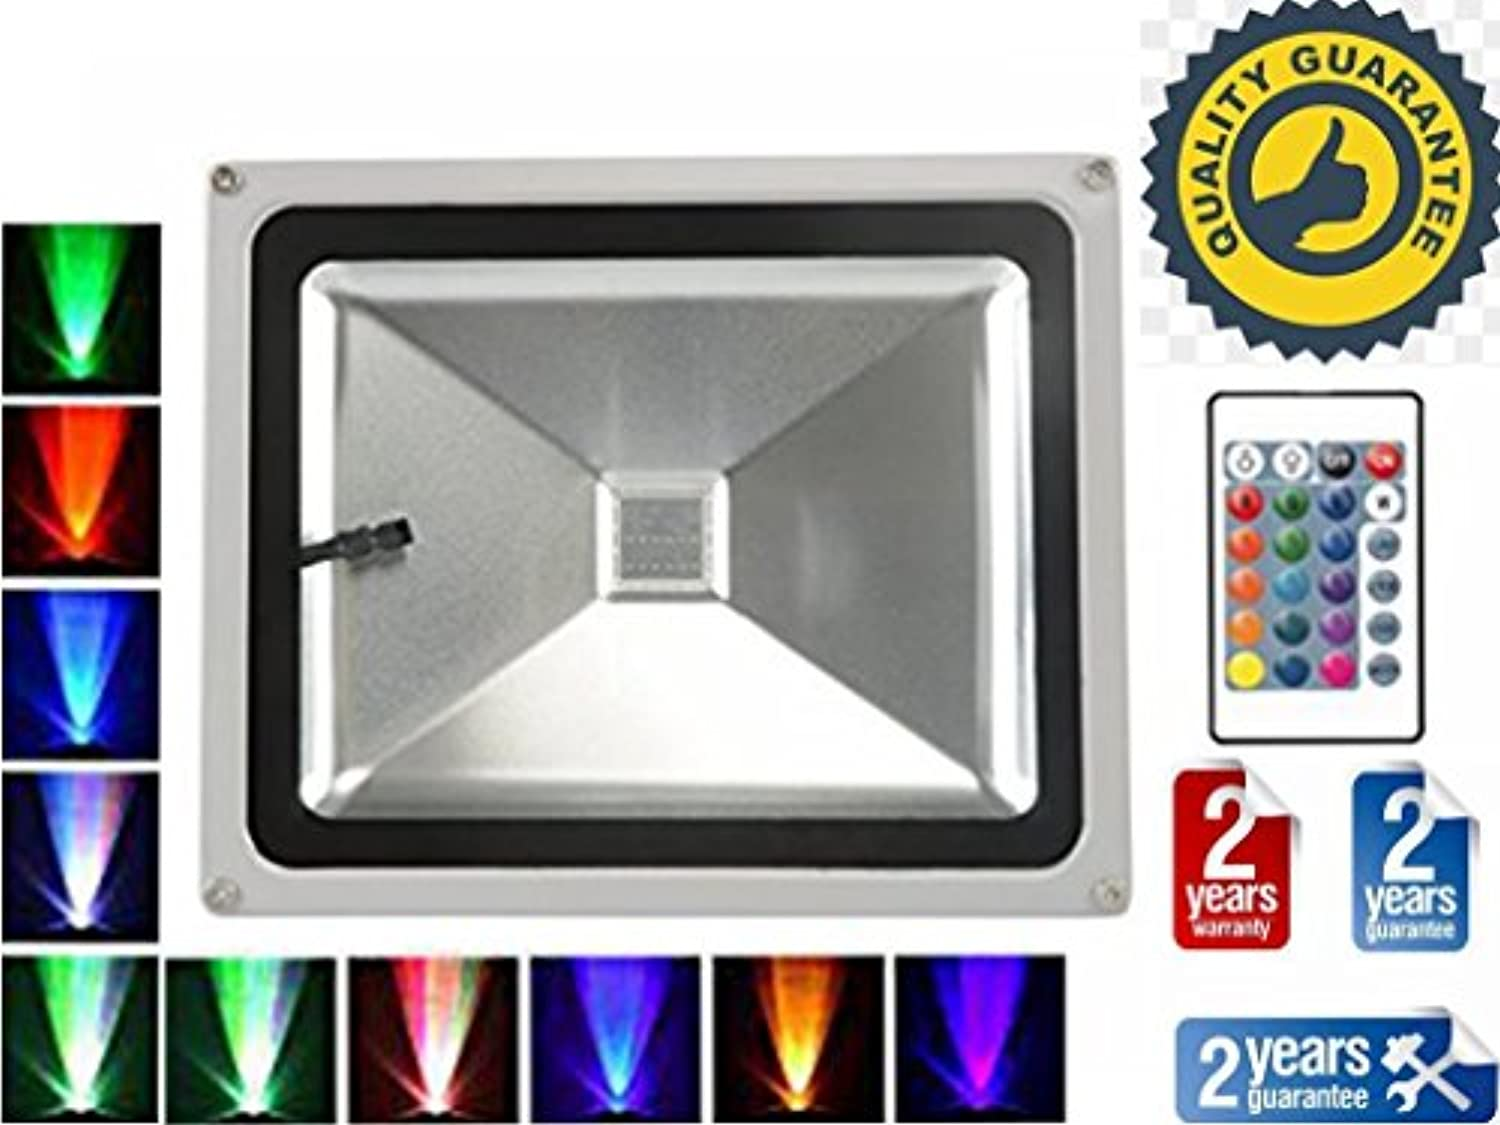 TDRSHINE RGB LED Flutlicht mit Fernbedienung, 16 Farben & 4 Modi, wasserdichte Outdoor Security Lights (30W)